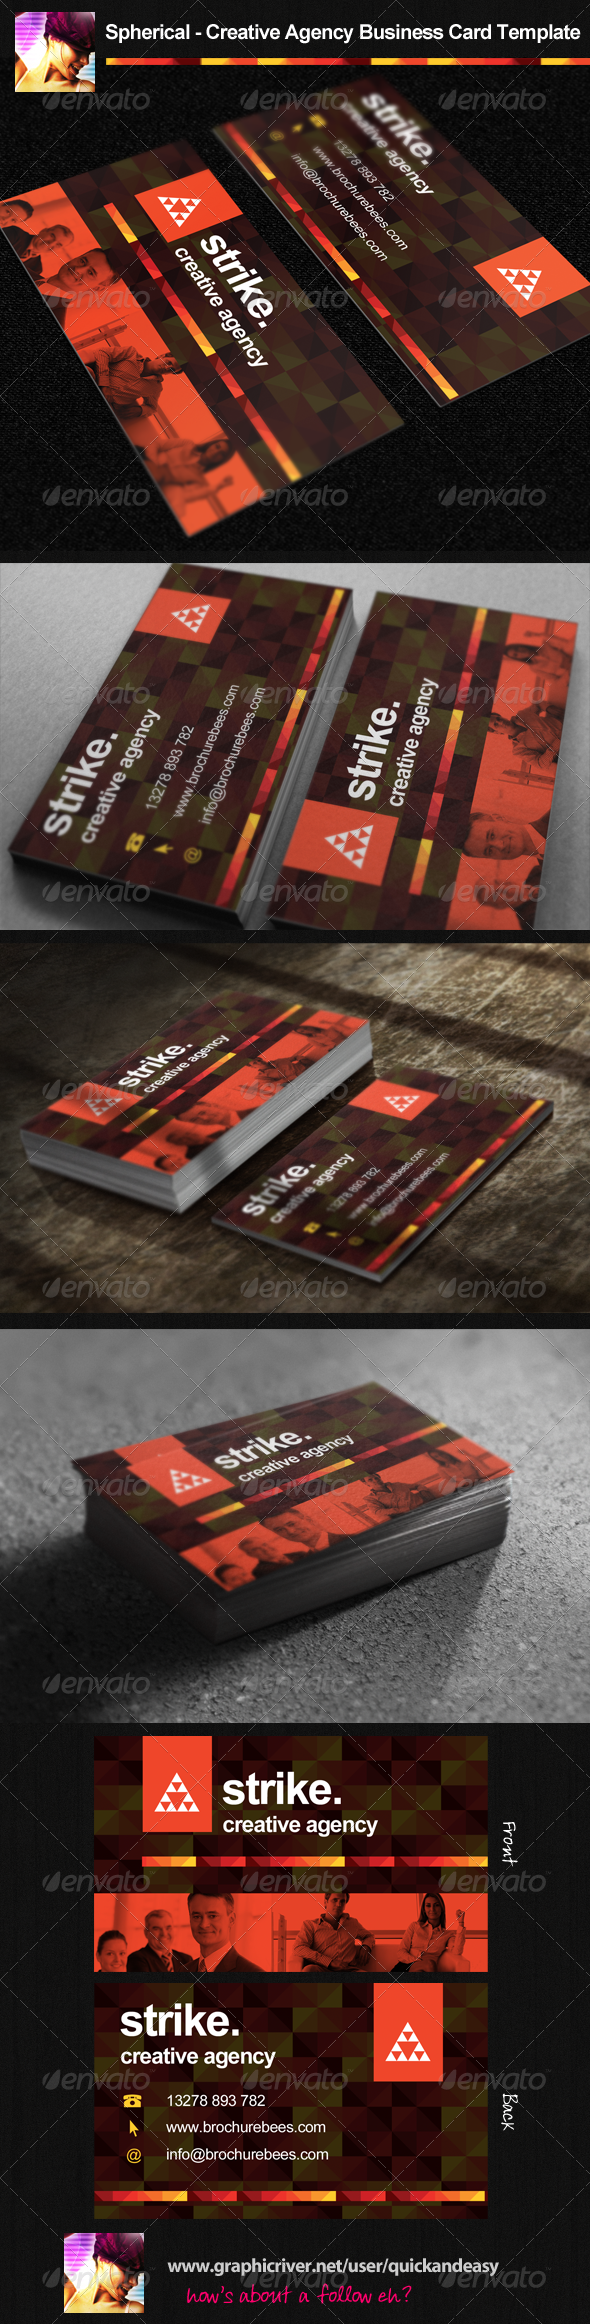 Strike Creative Agency Business Card Template - Creative Business Cards